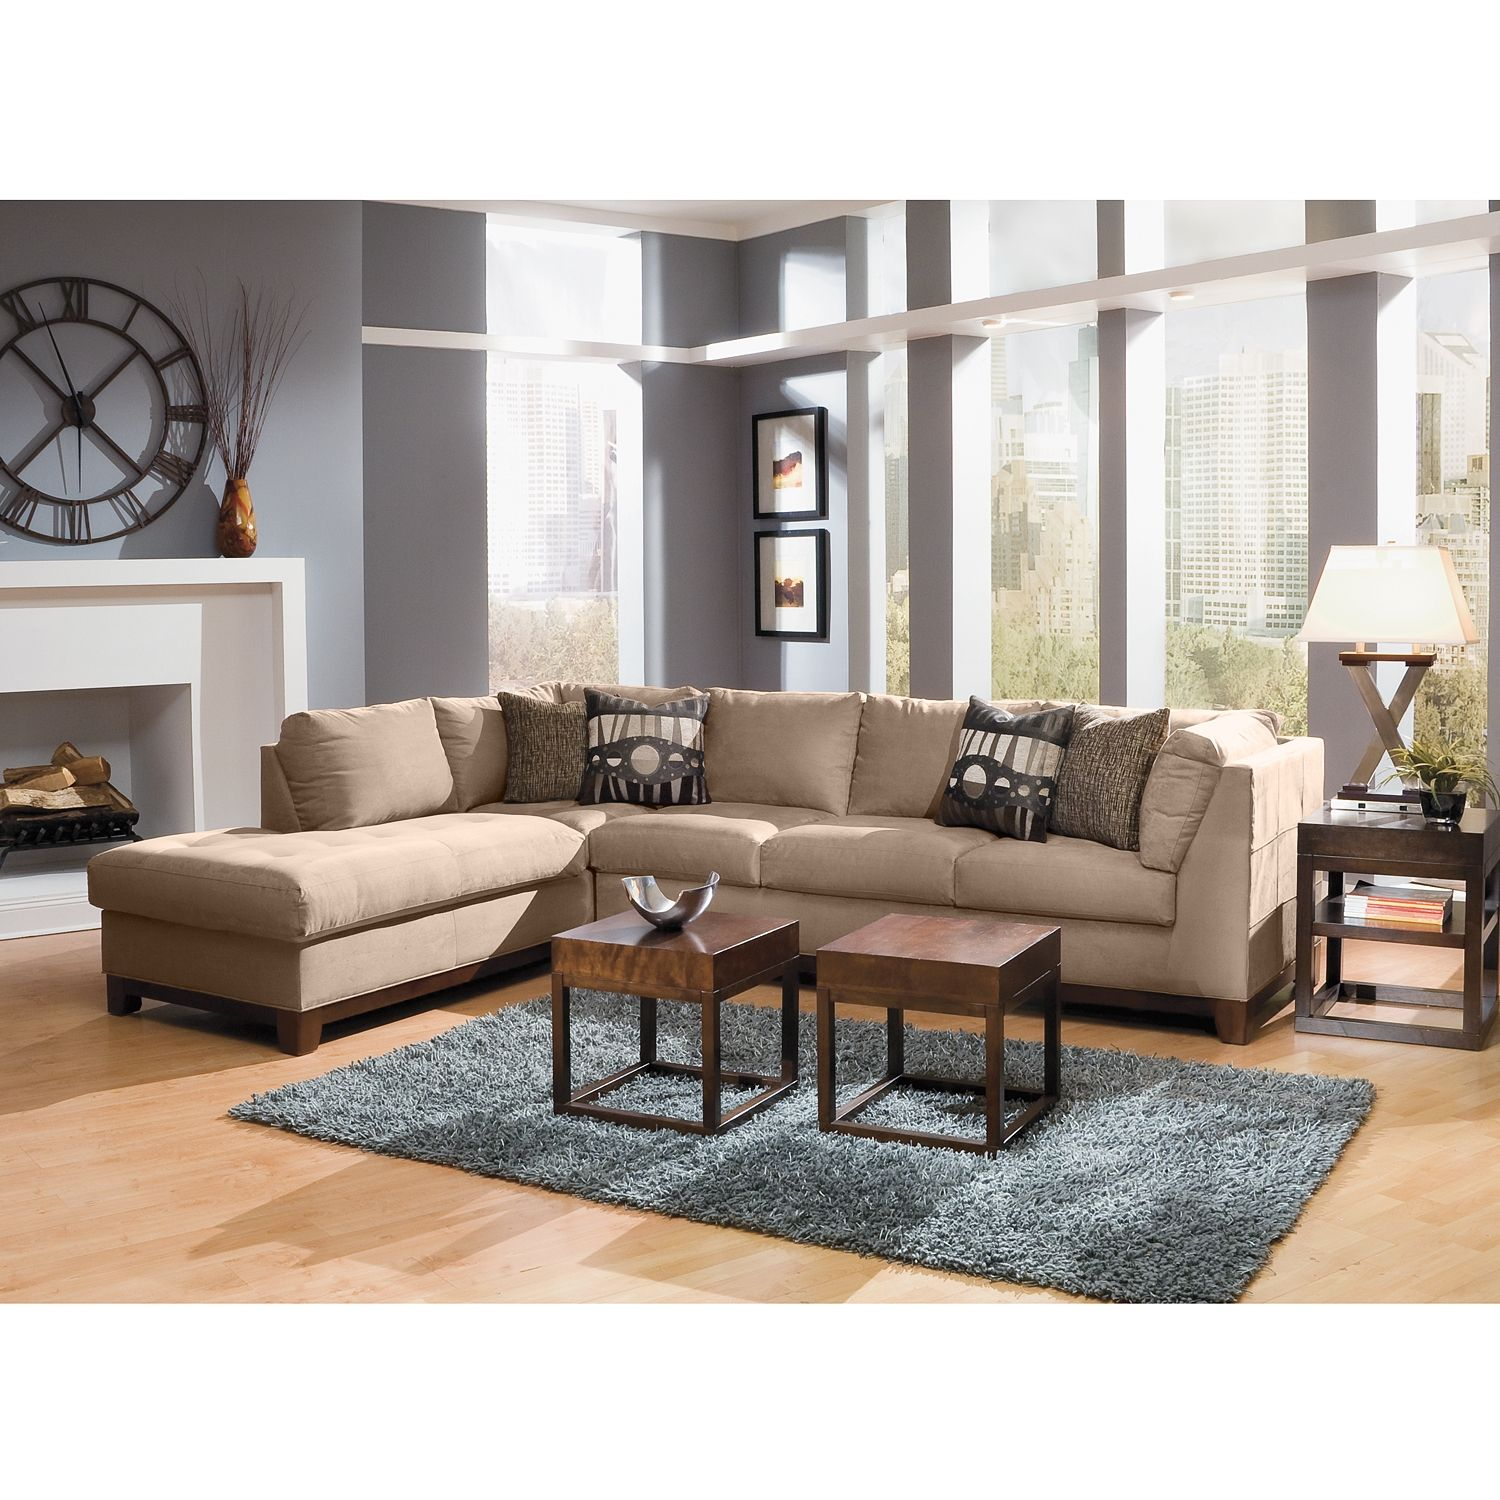 Living Room Furniture Soho II 2 Pc Sectional Reverse from